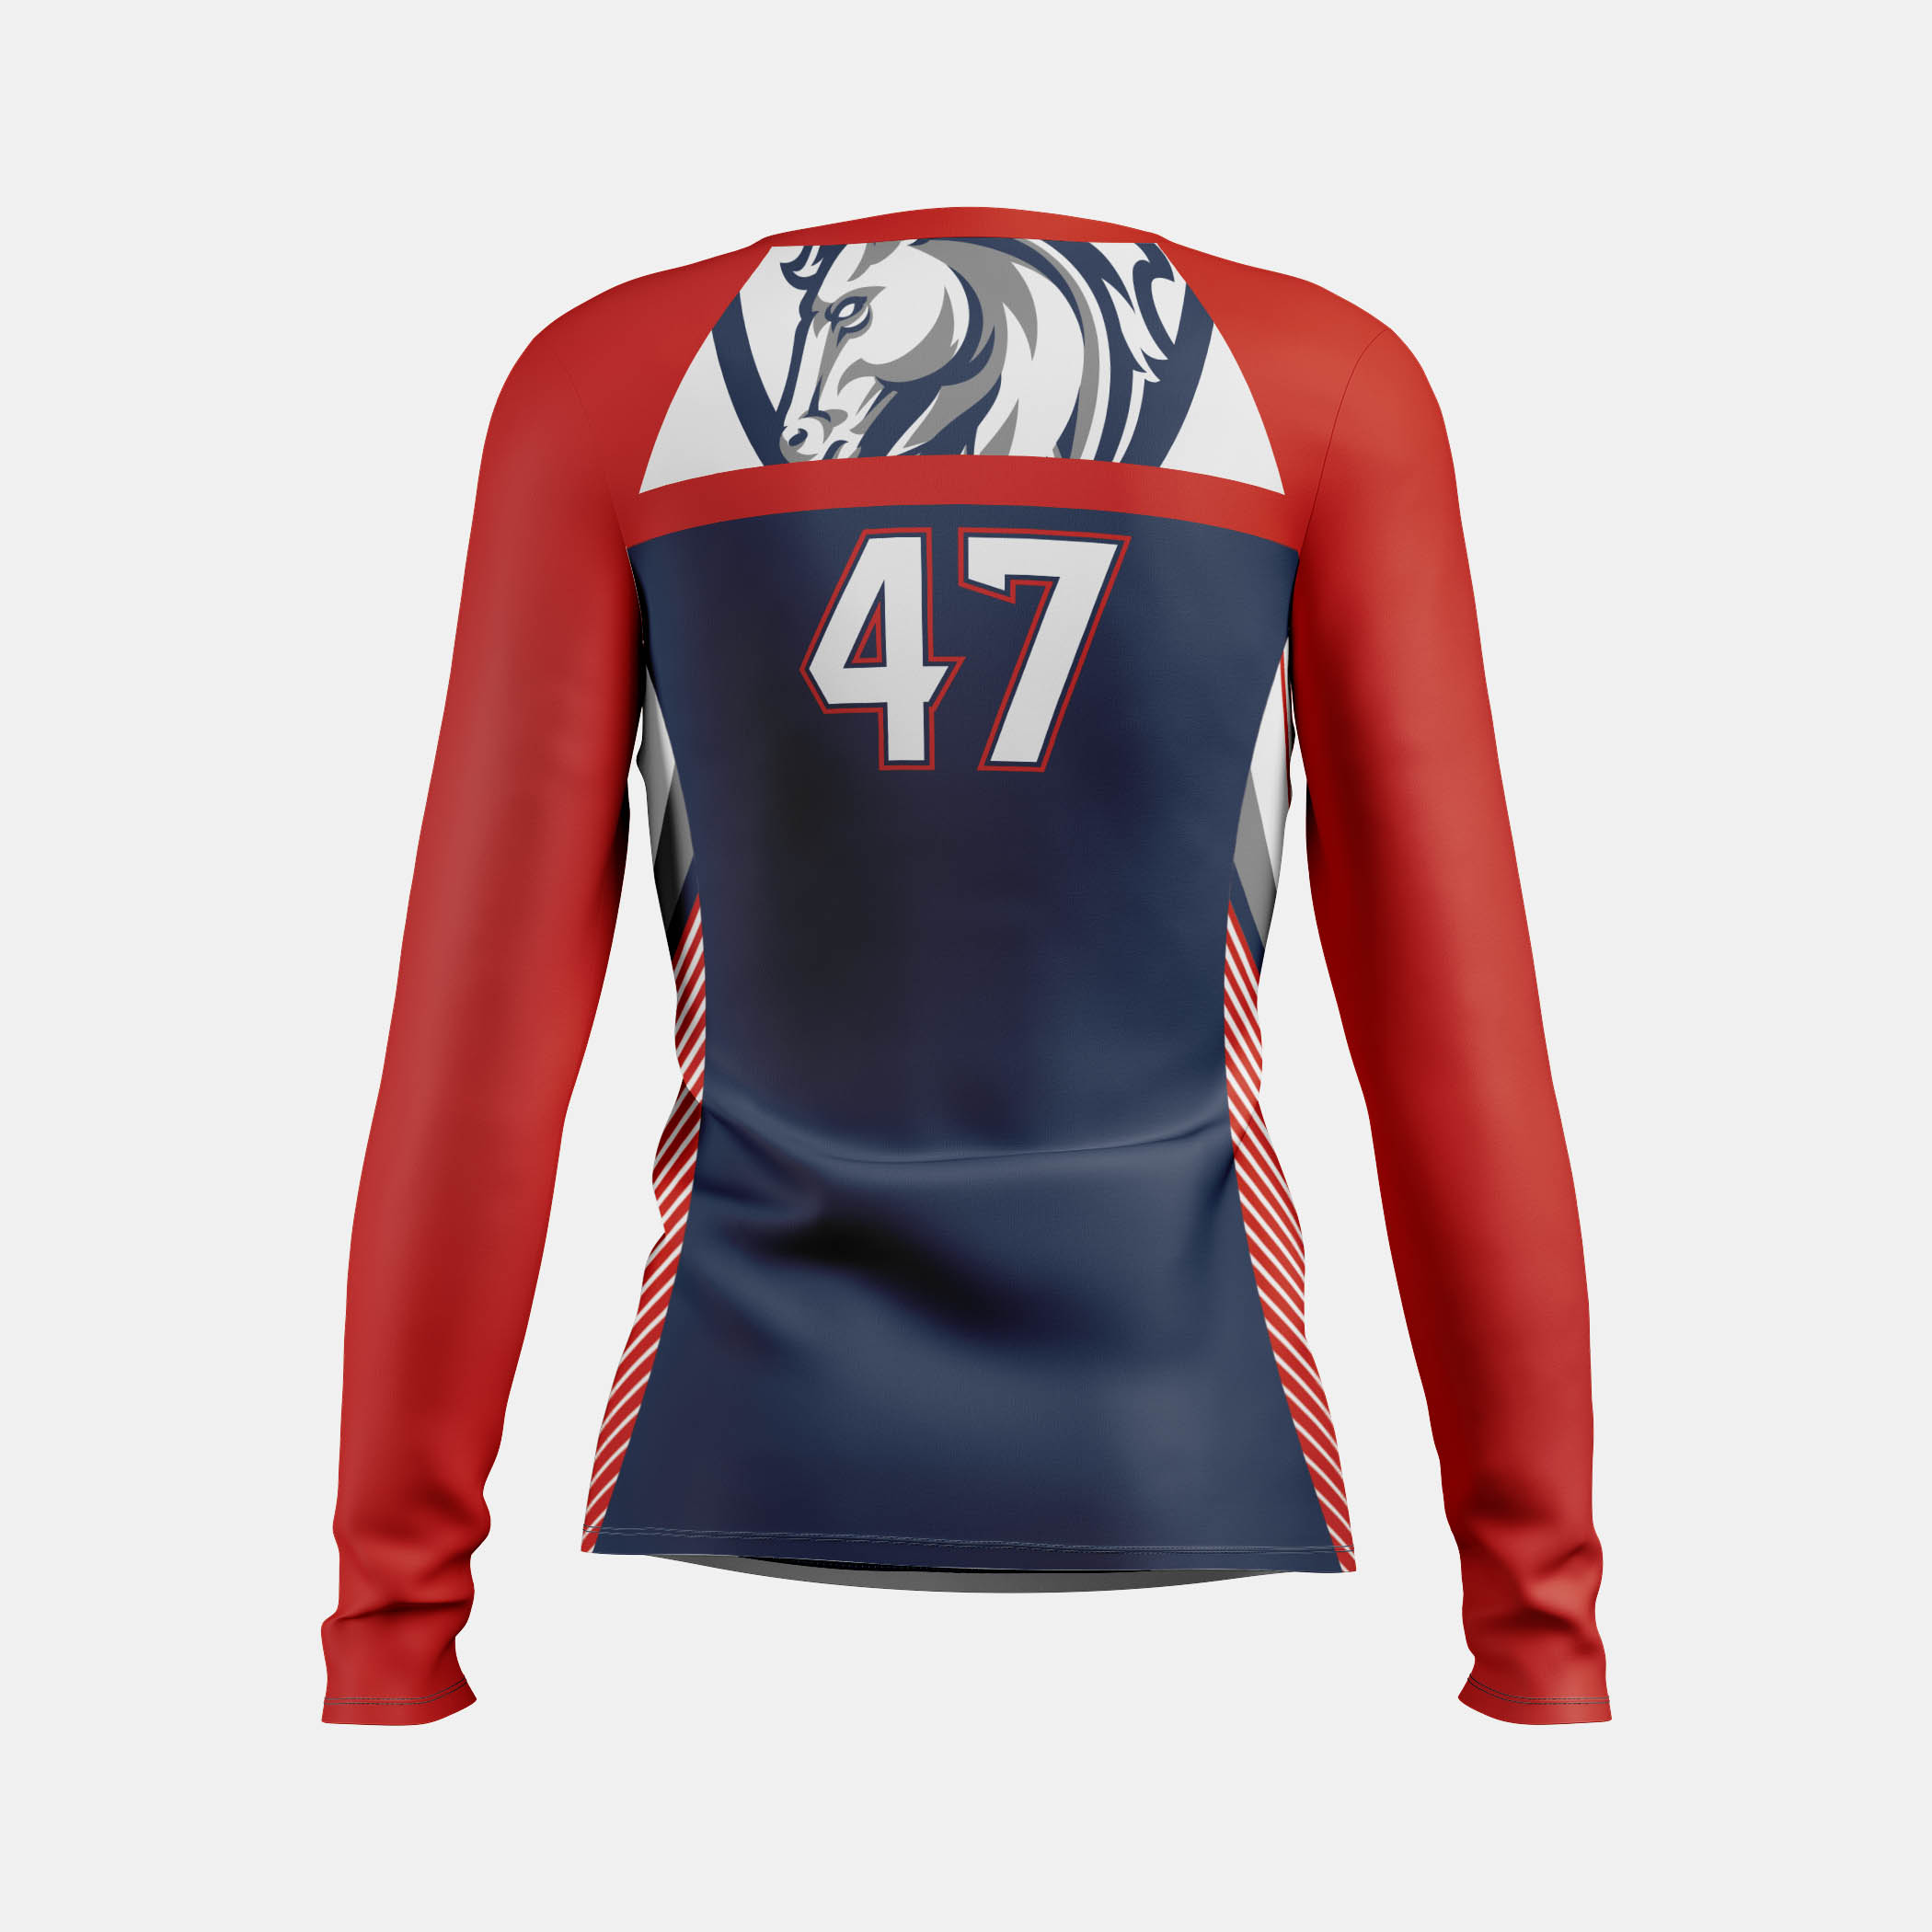 Victory Womens LS Back View